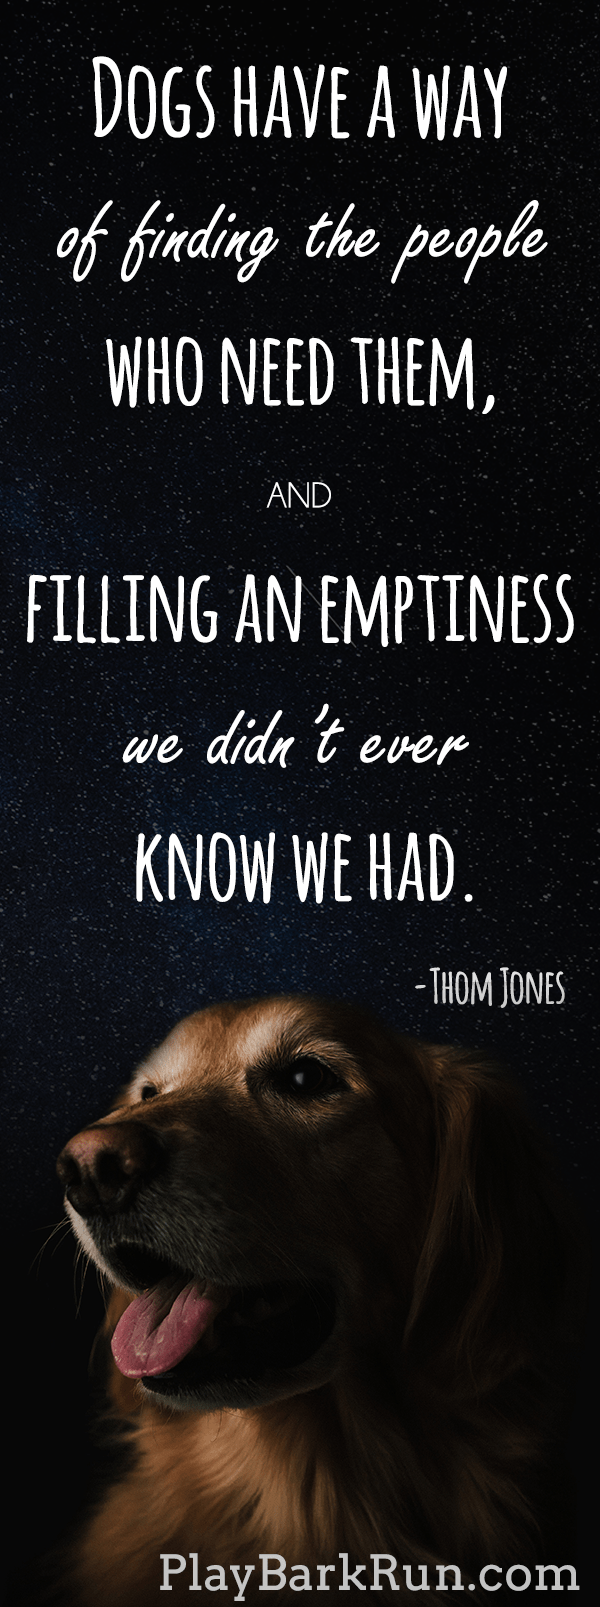 Famous Quotes On Love Inspiration 27 Inspirational Dog Quotes About Life And Love